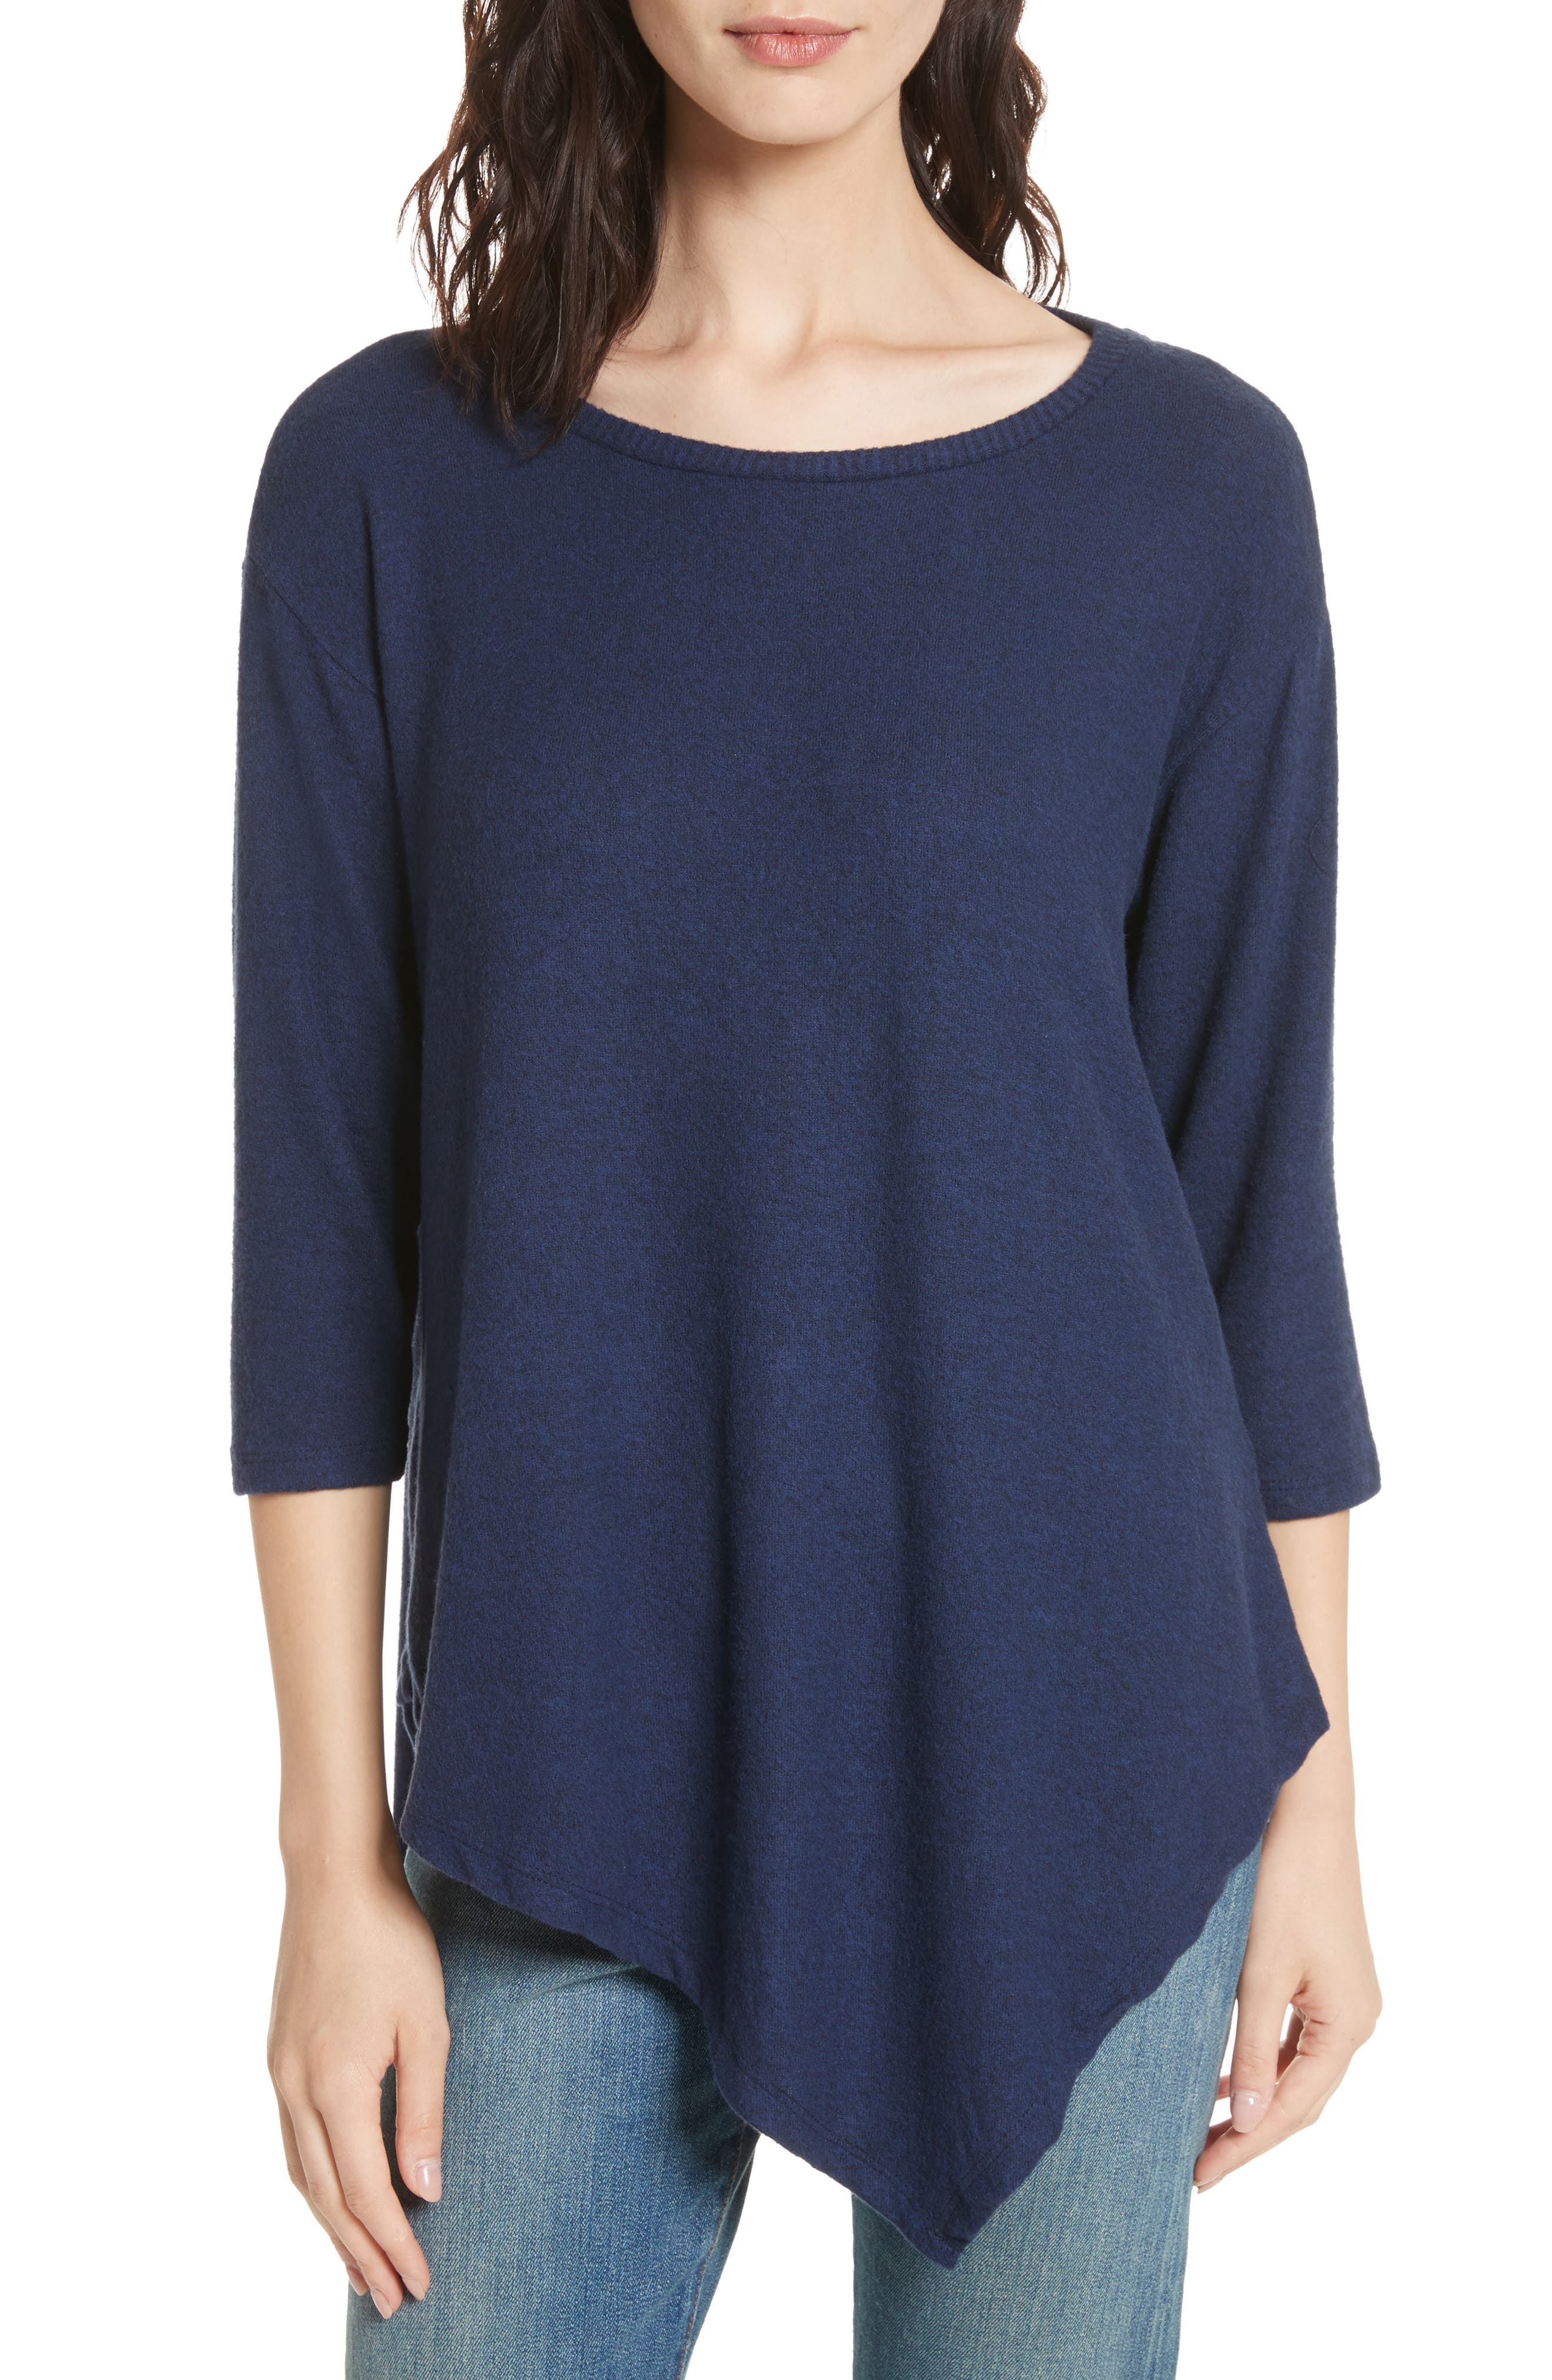 Soft Joie Tammy Asymmetrical Sweater